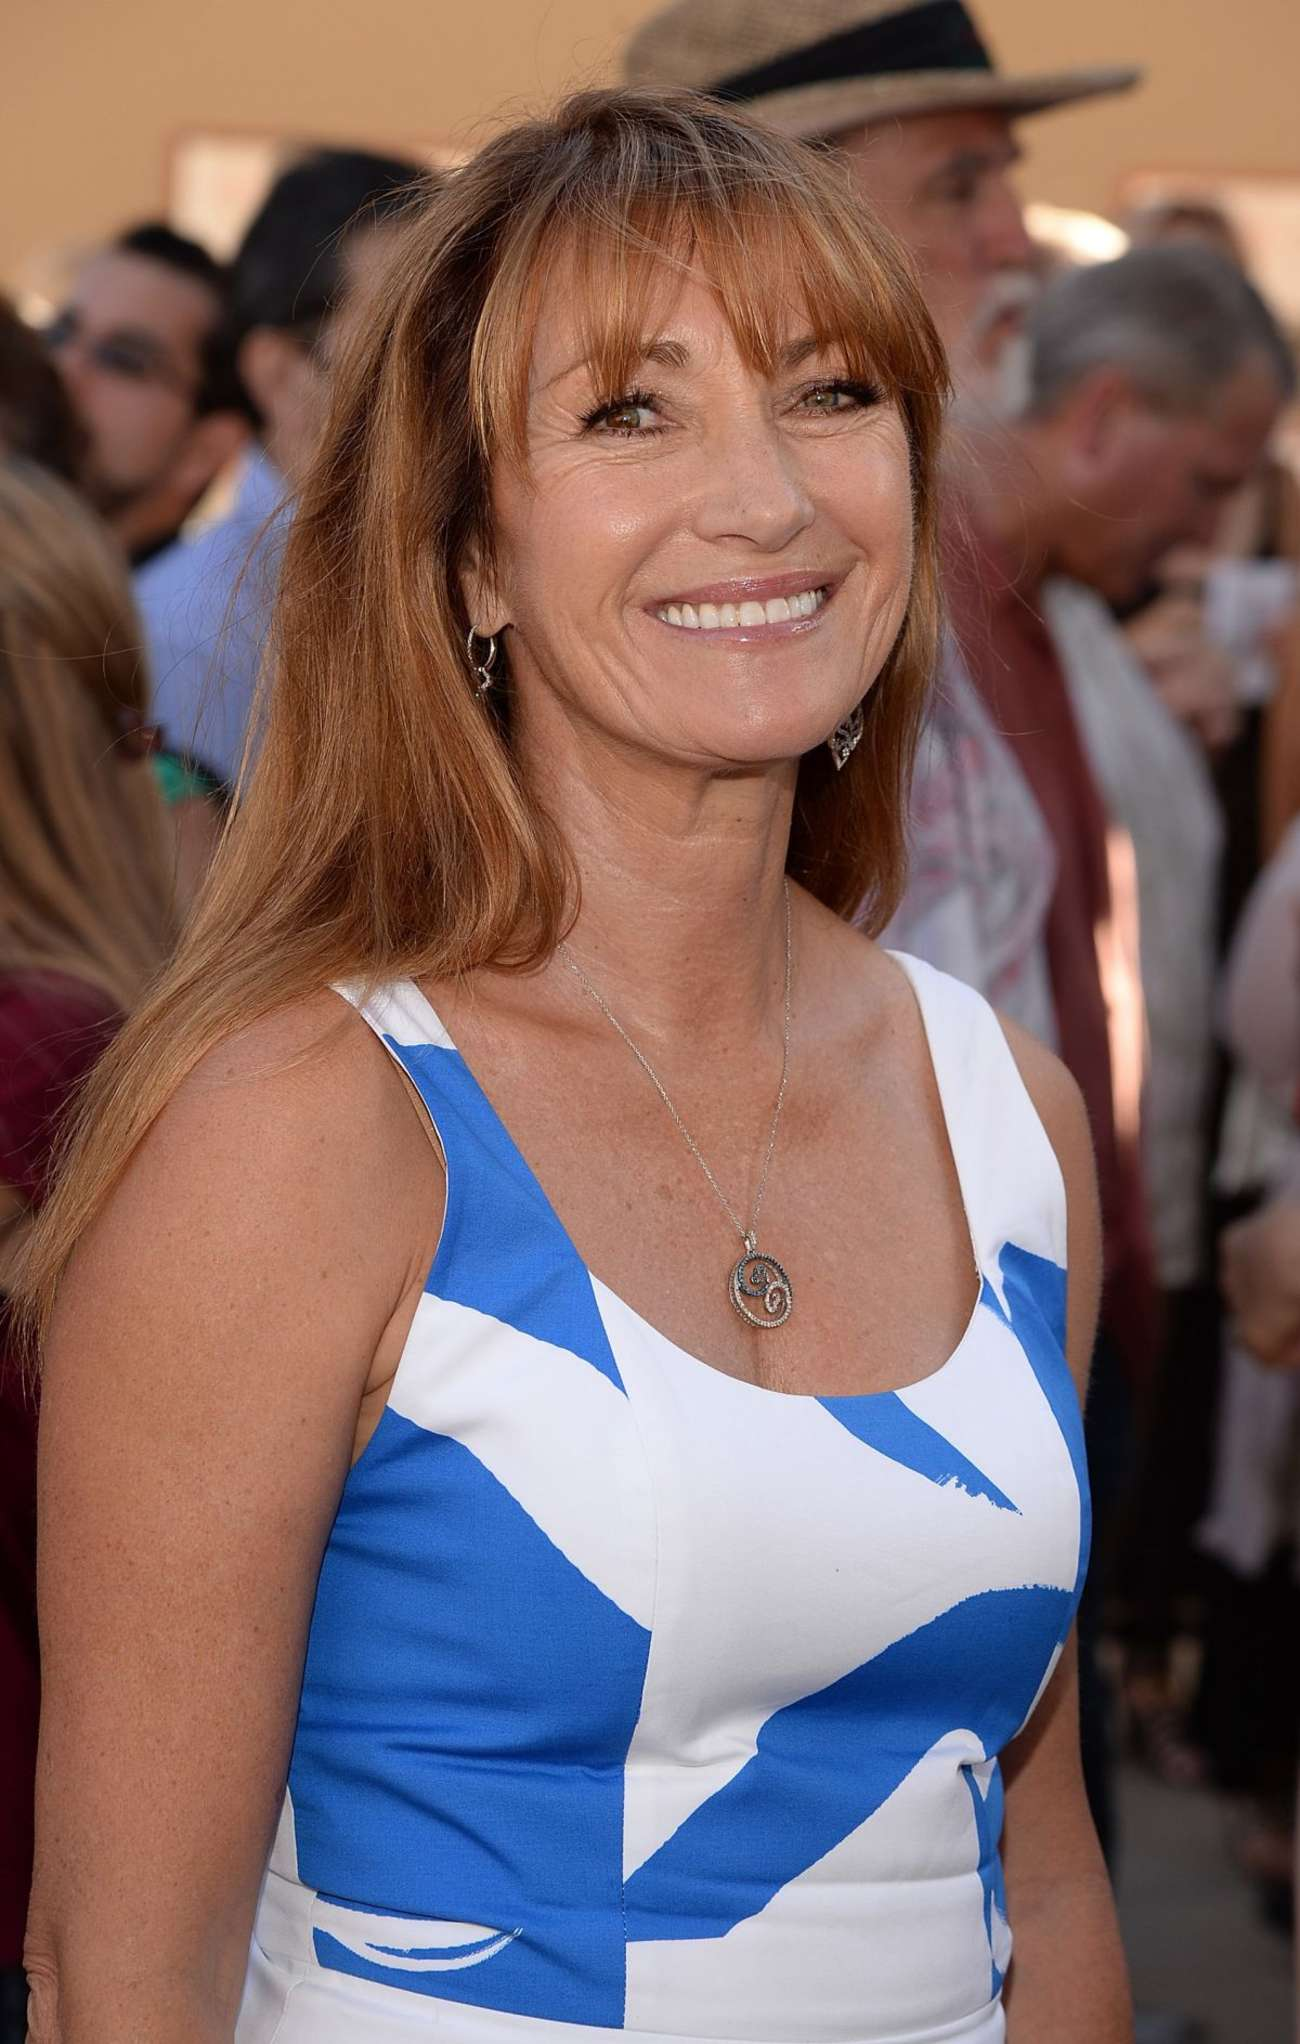 Jane Seymour - 2015 Festival of Arts Benefit Concert and Pageant in Laguna Beach